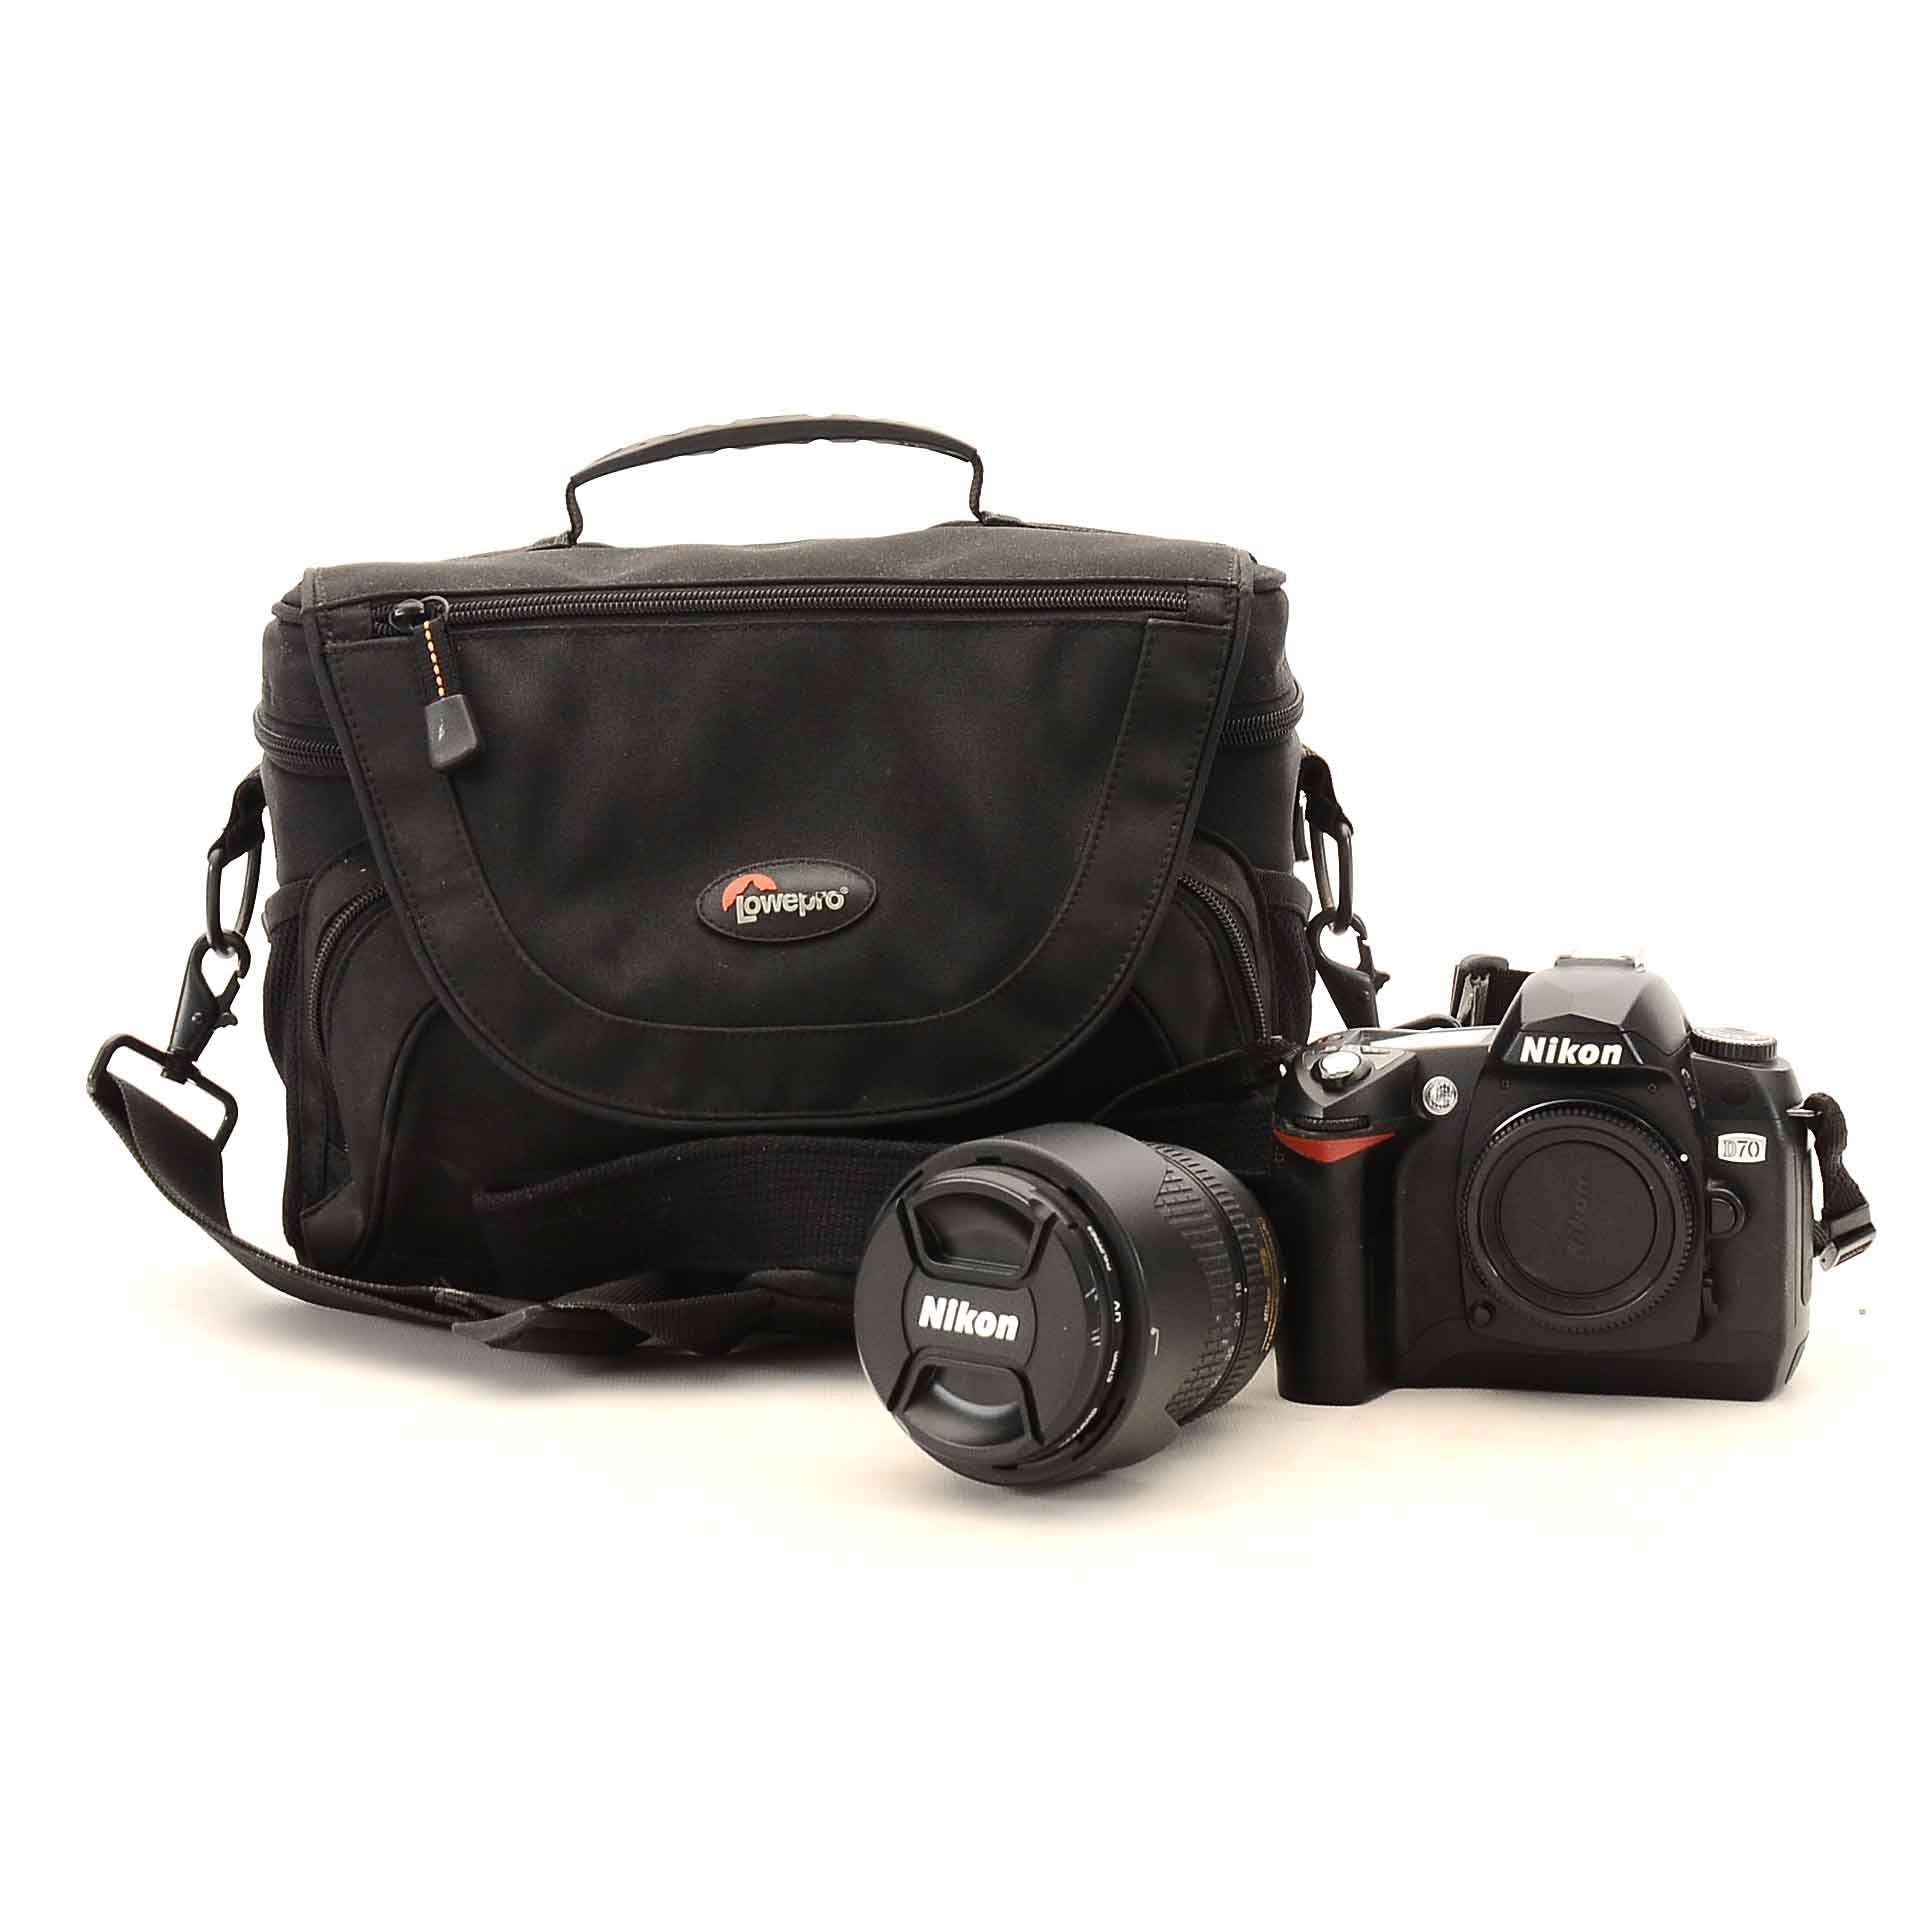 Nikon D70 Digital SLR Camera with Case